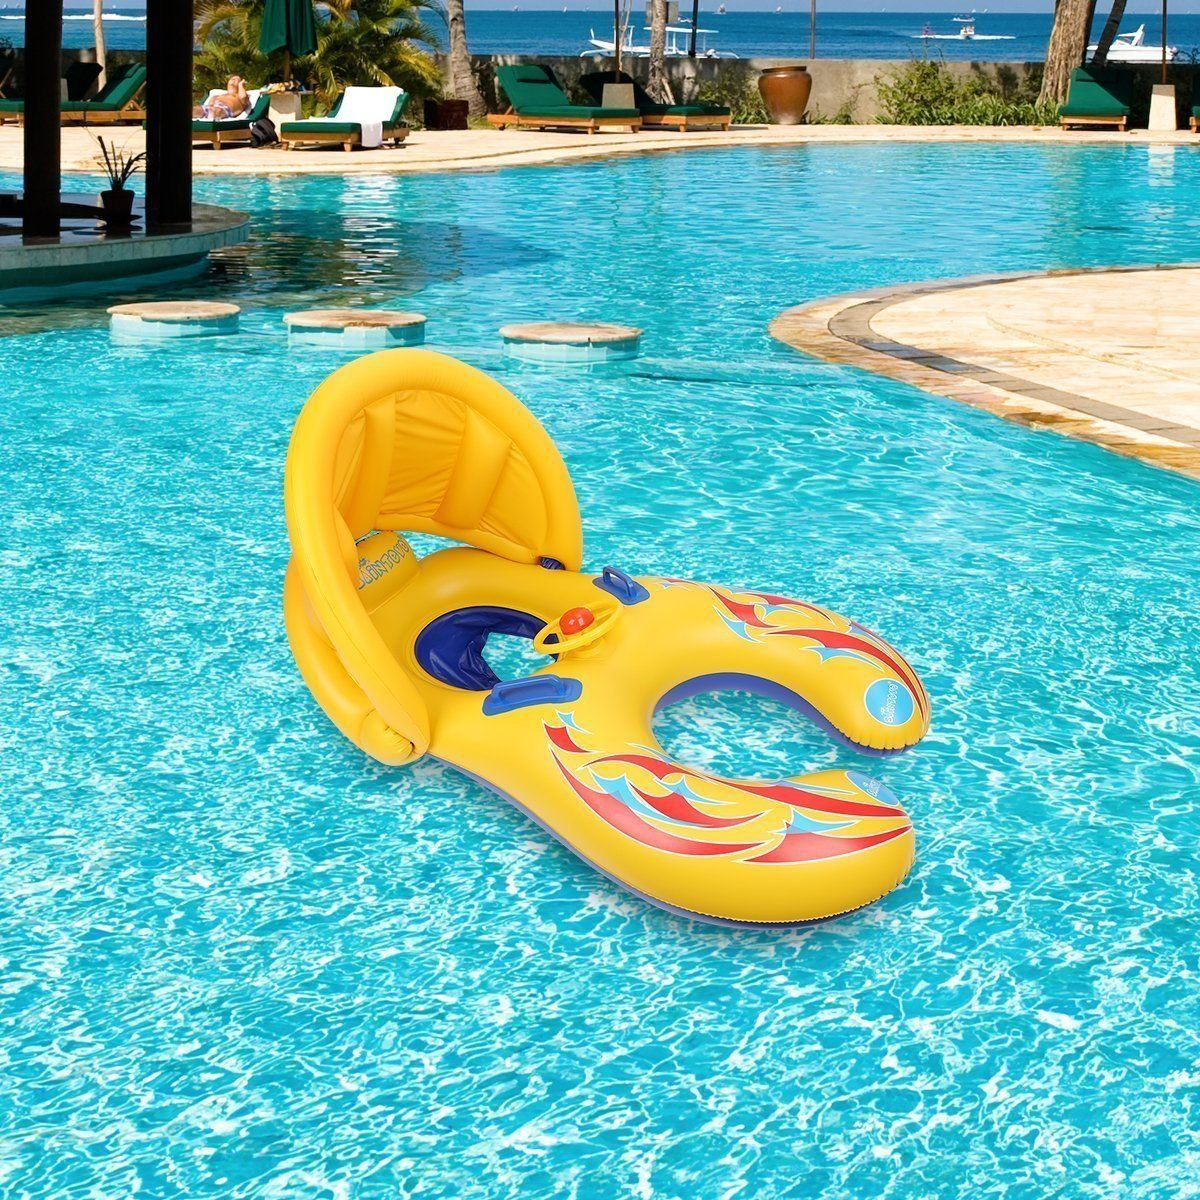 Mother Baby Swimming Pool Float Beach Toys Inflatable Children Safety Ring Seat Canopy & Mother Baby Swimming Pool Float Beach Toys Inflatable Children ...